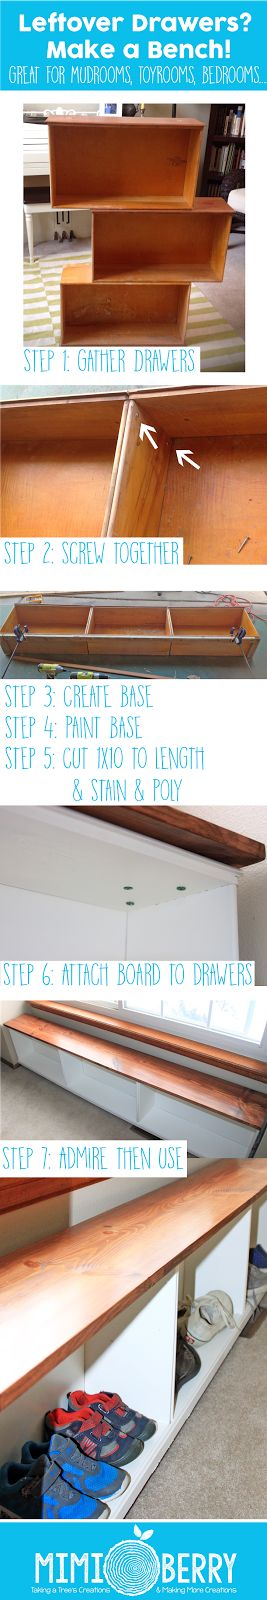 Don't throw away those extra drawers you have laying around, turn them into a bench! Great for mudroom benches, or for a kid's bedroom or playroom. Simple, cheap, and easy! Or if you have a dresser that has seen better days, you can use some of the drawers for the bench, and the structure of the dresser to make a dress up station. Two great projects from one dresser!